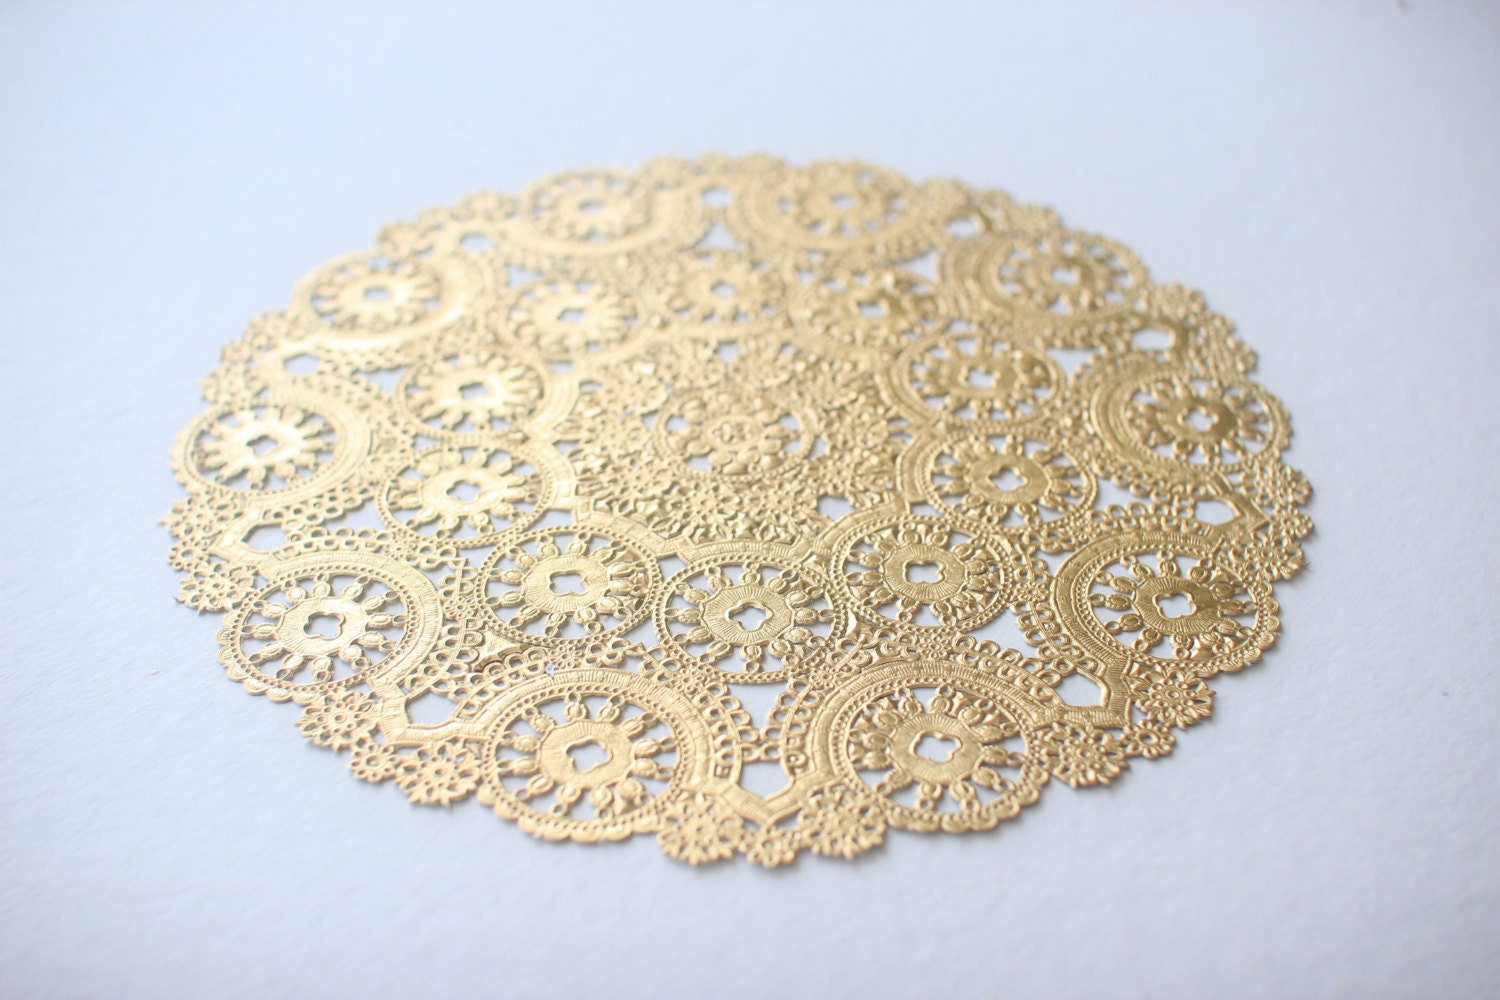 gold paper doilies Paper doily – 60-pack round doilies paper lace placemats for cakes, desserts, baked treat display, ideal for weddings, formal event decoration, tableware décor.